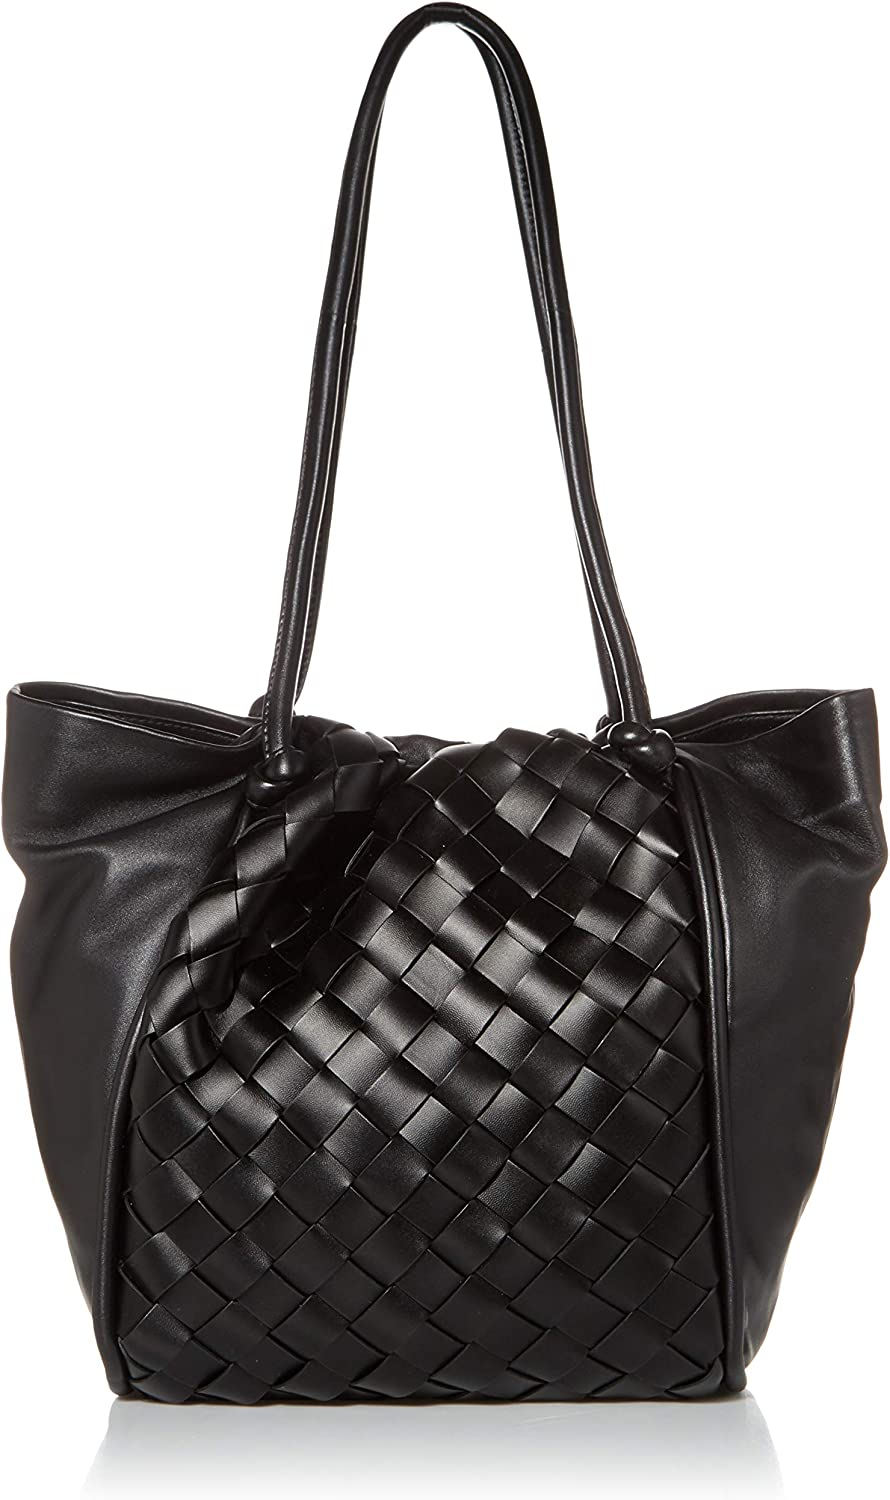 Seasonal Wrap Introduction Vince Camuto Free shipping on posting reviews Jude Tote 1